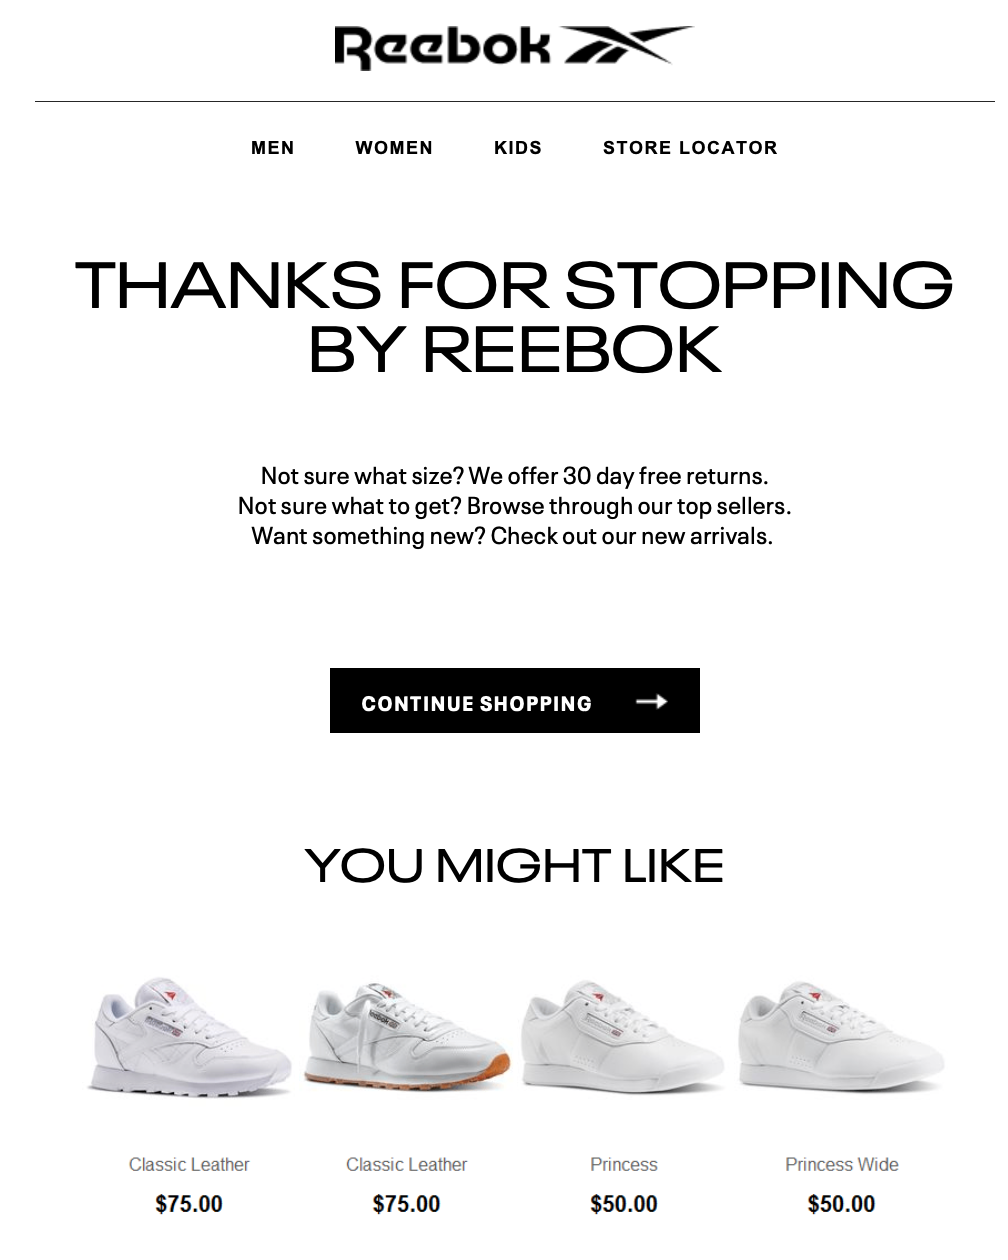 an abandoned cart email sent by Reebok